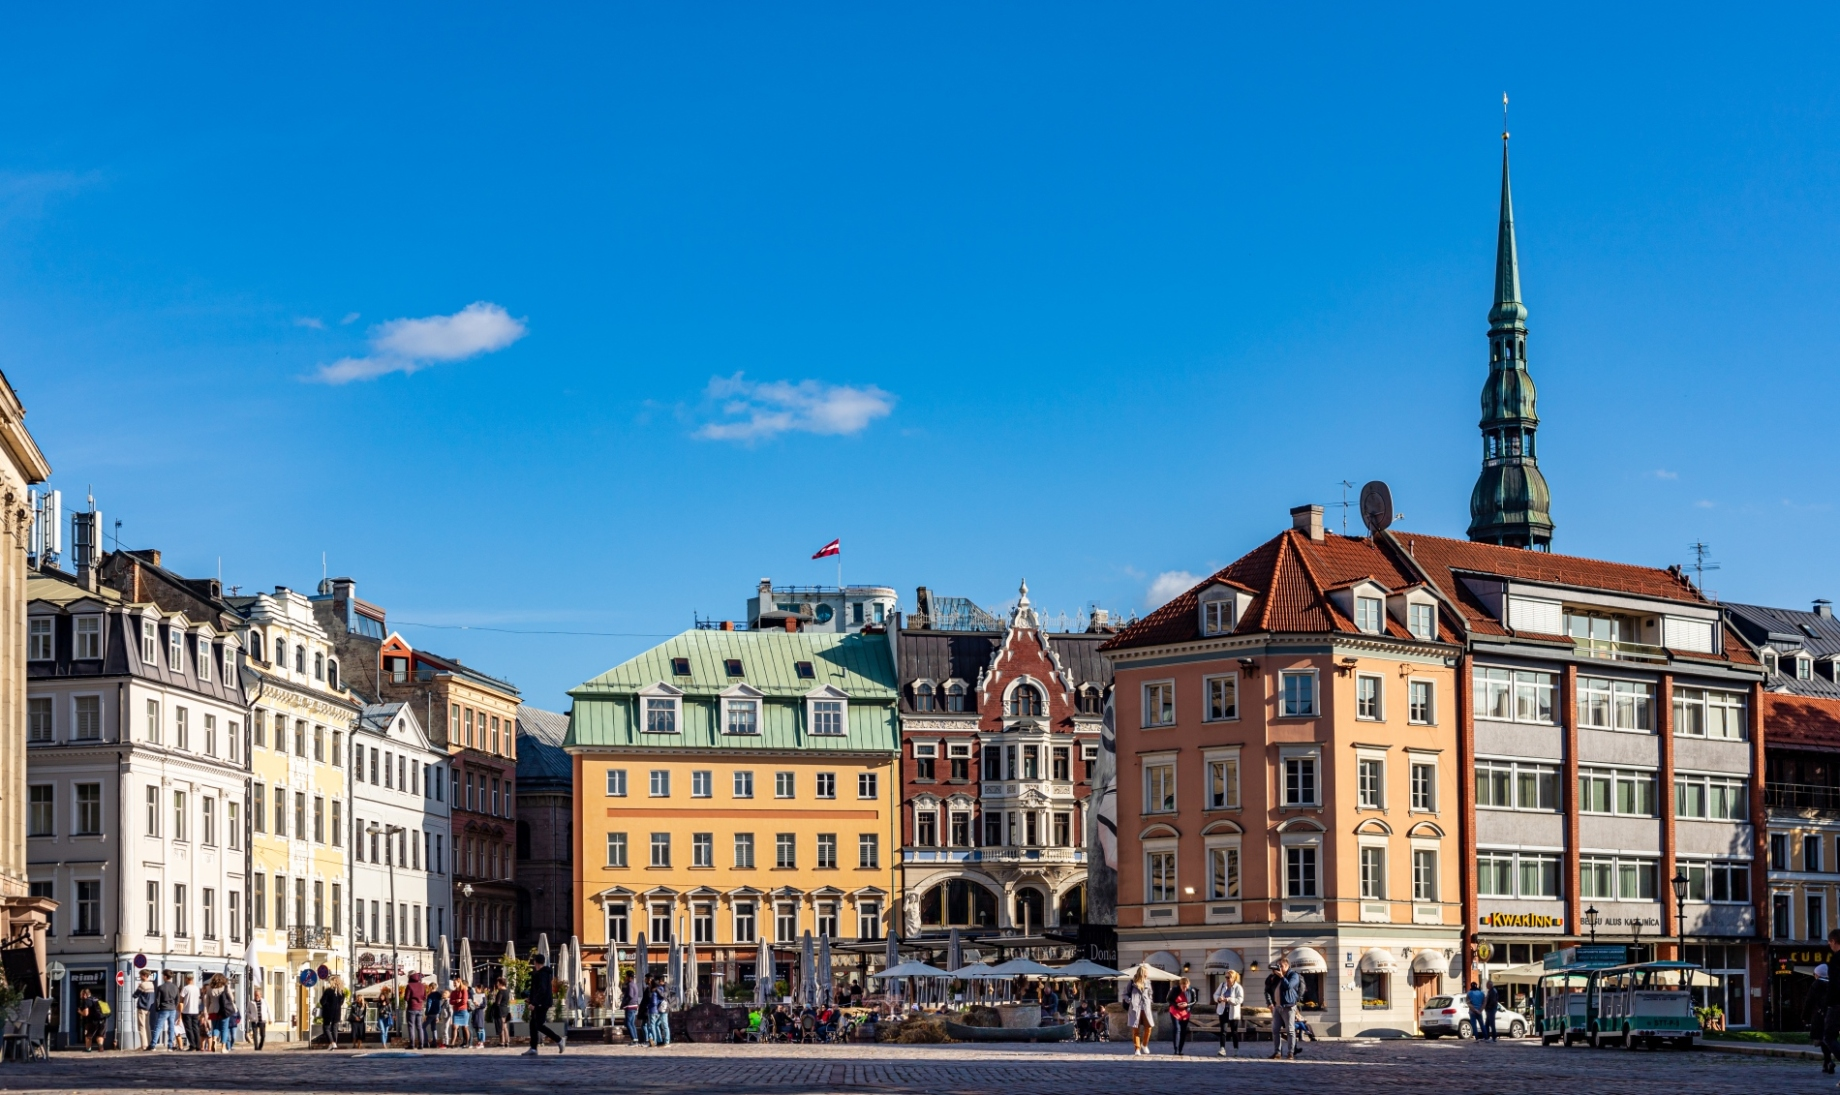 Riga Main Square. Photo by Evelyn Apinis